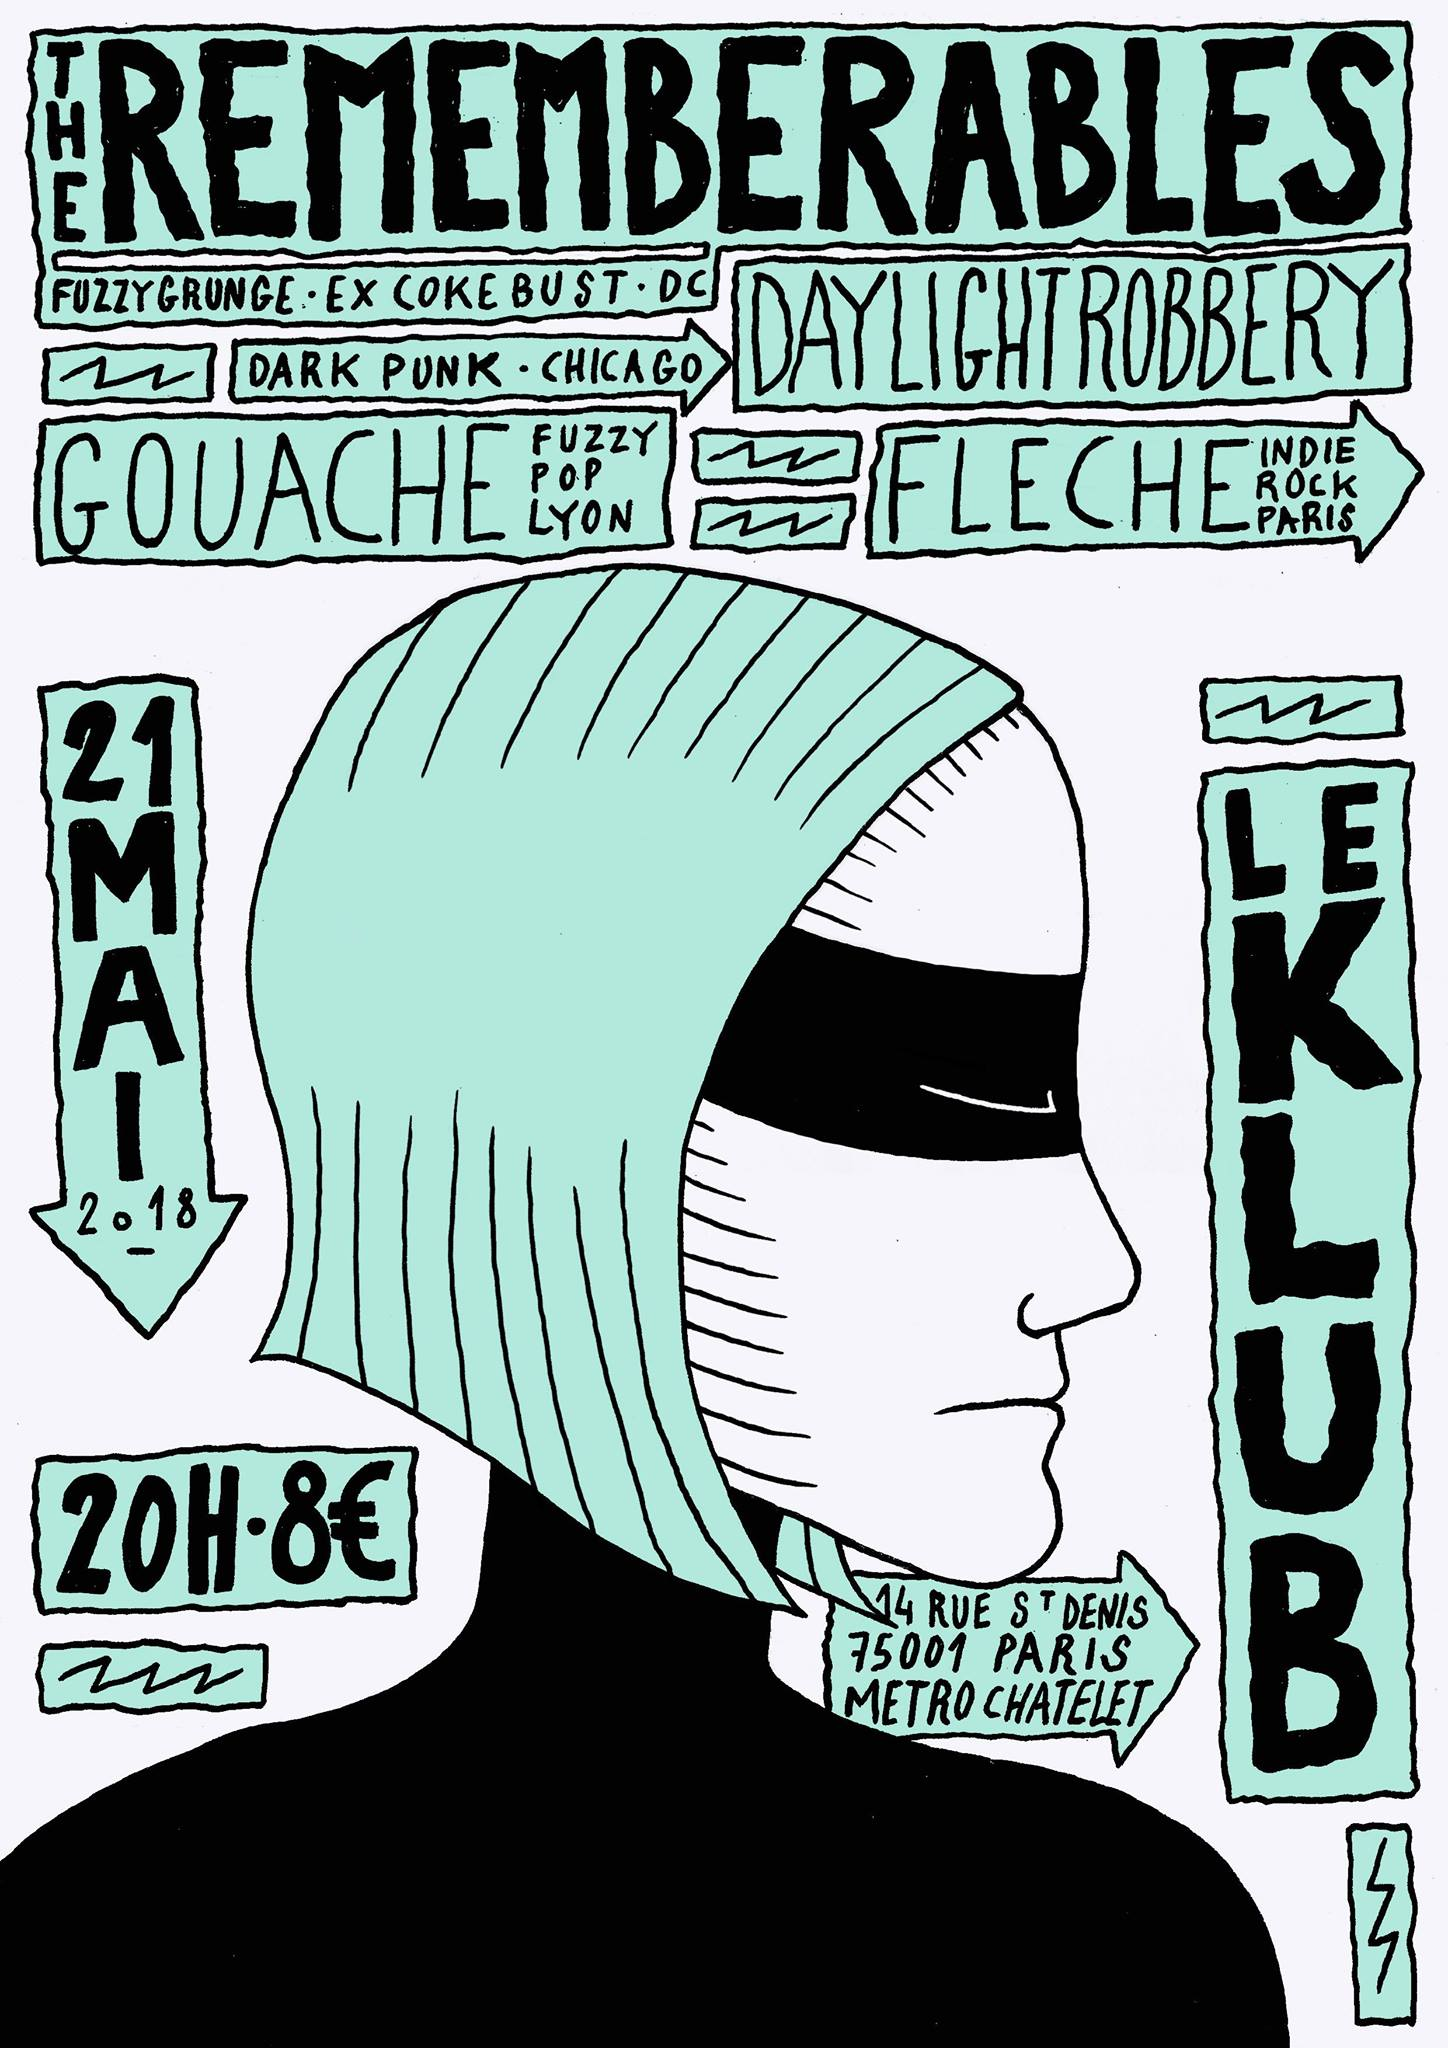 THE REMEMBERABLES + DAYLIGHT ROBBERY + GOUACHE ■ 21.05